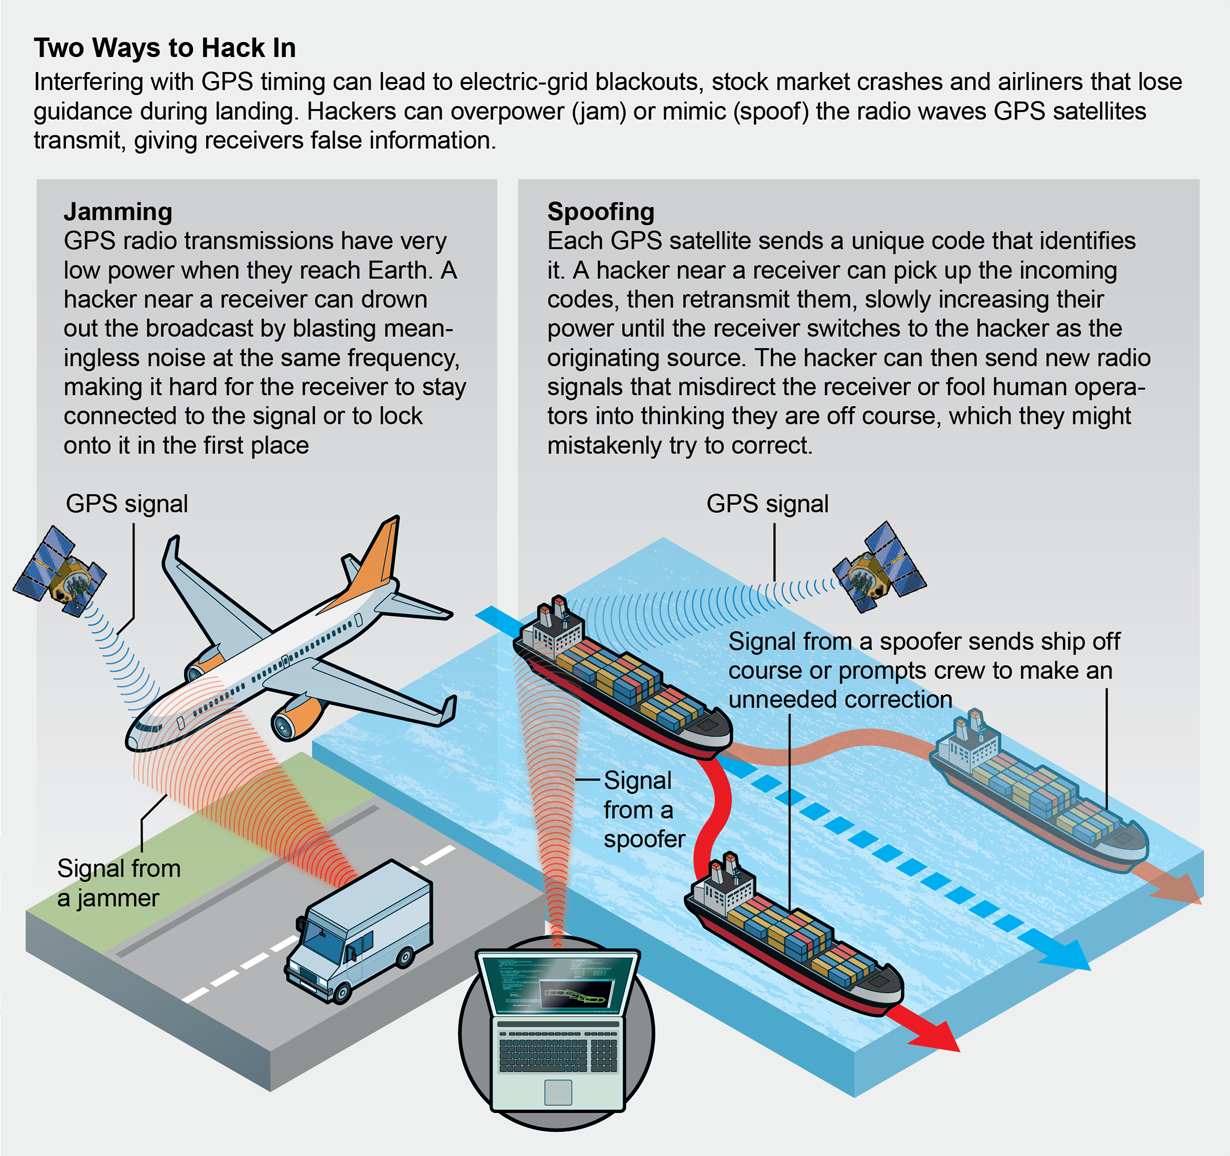 Graphic shows how GPS can be compromised: Hackers can overpower (<em>jam</em>) or mimic (spoof) the radio waves GPS satellites transmit, blocking signals or giving receivers false information.